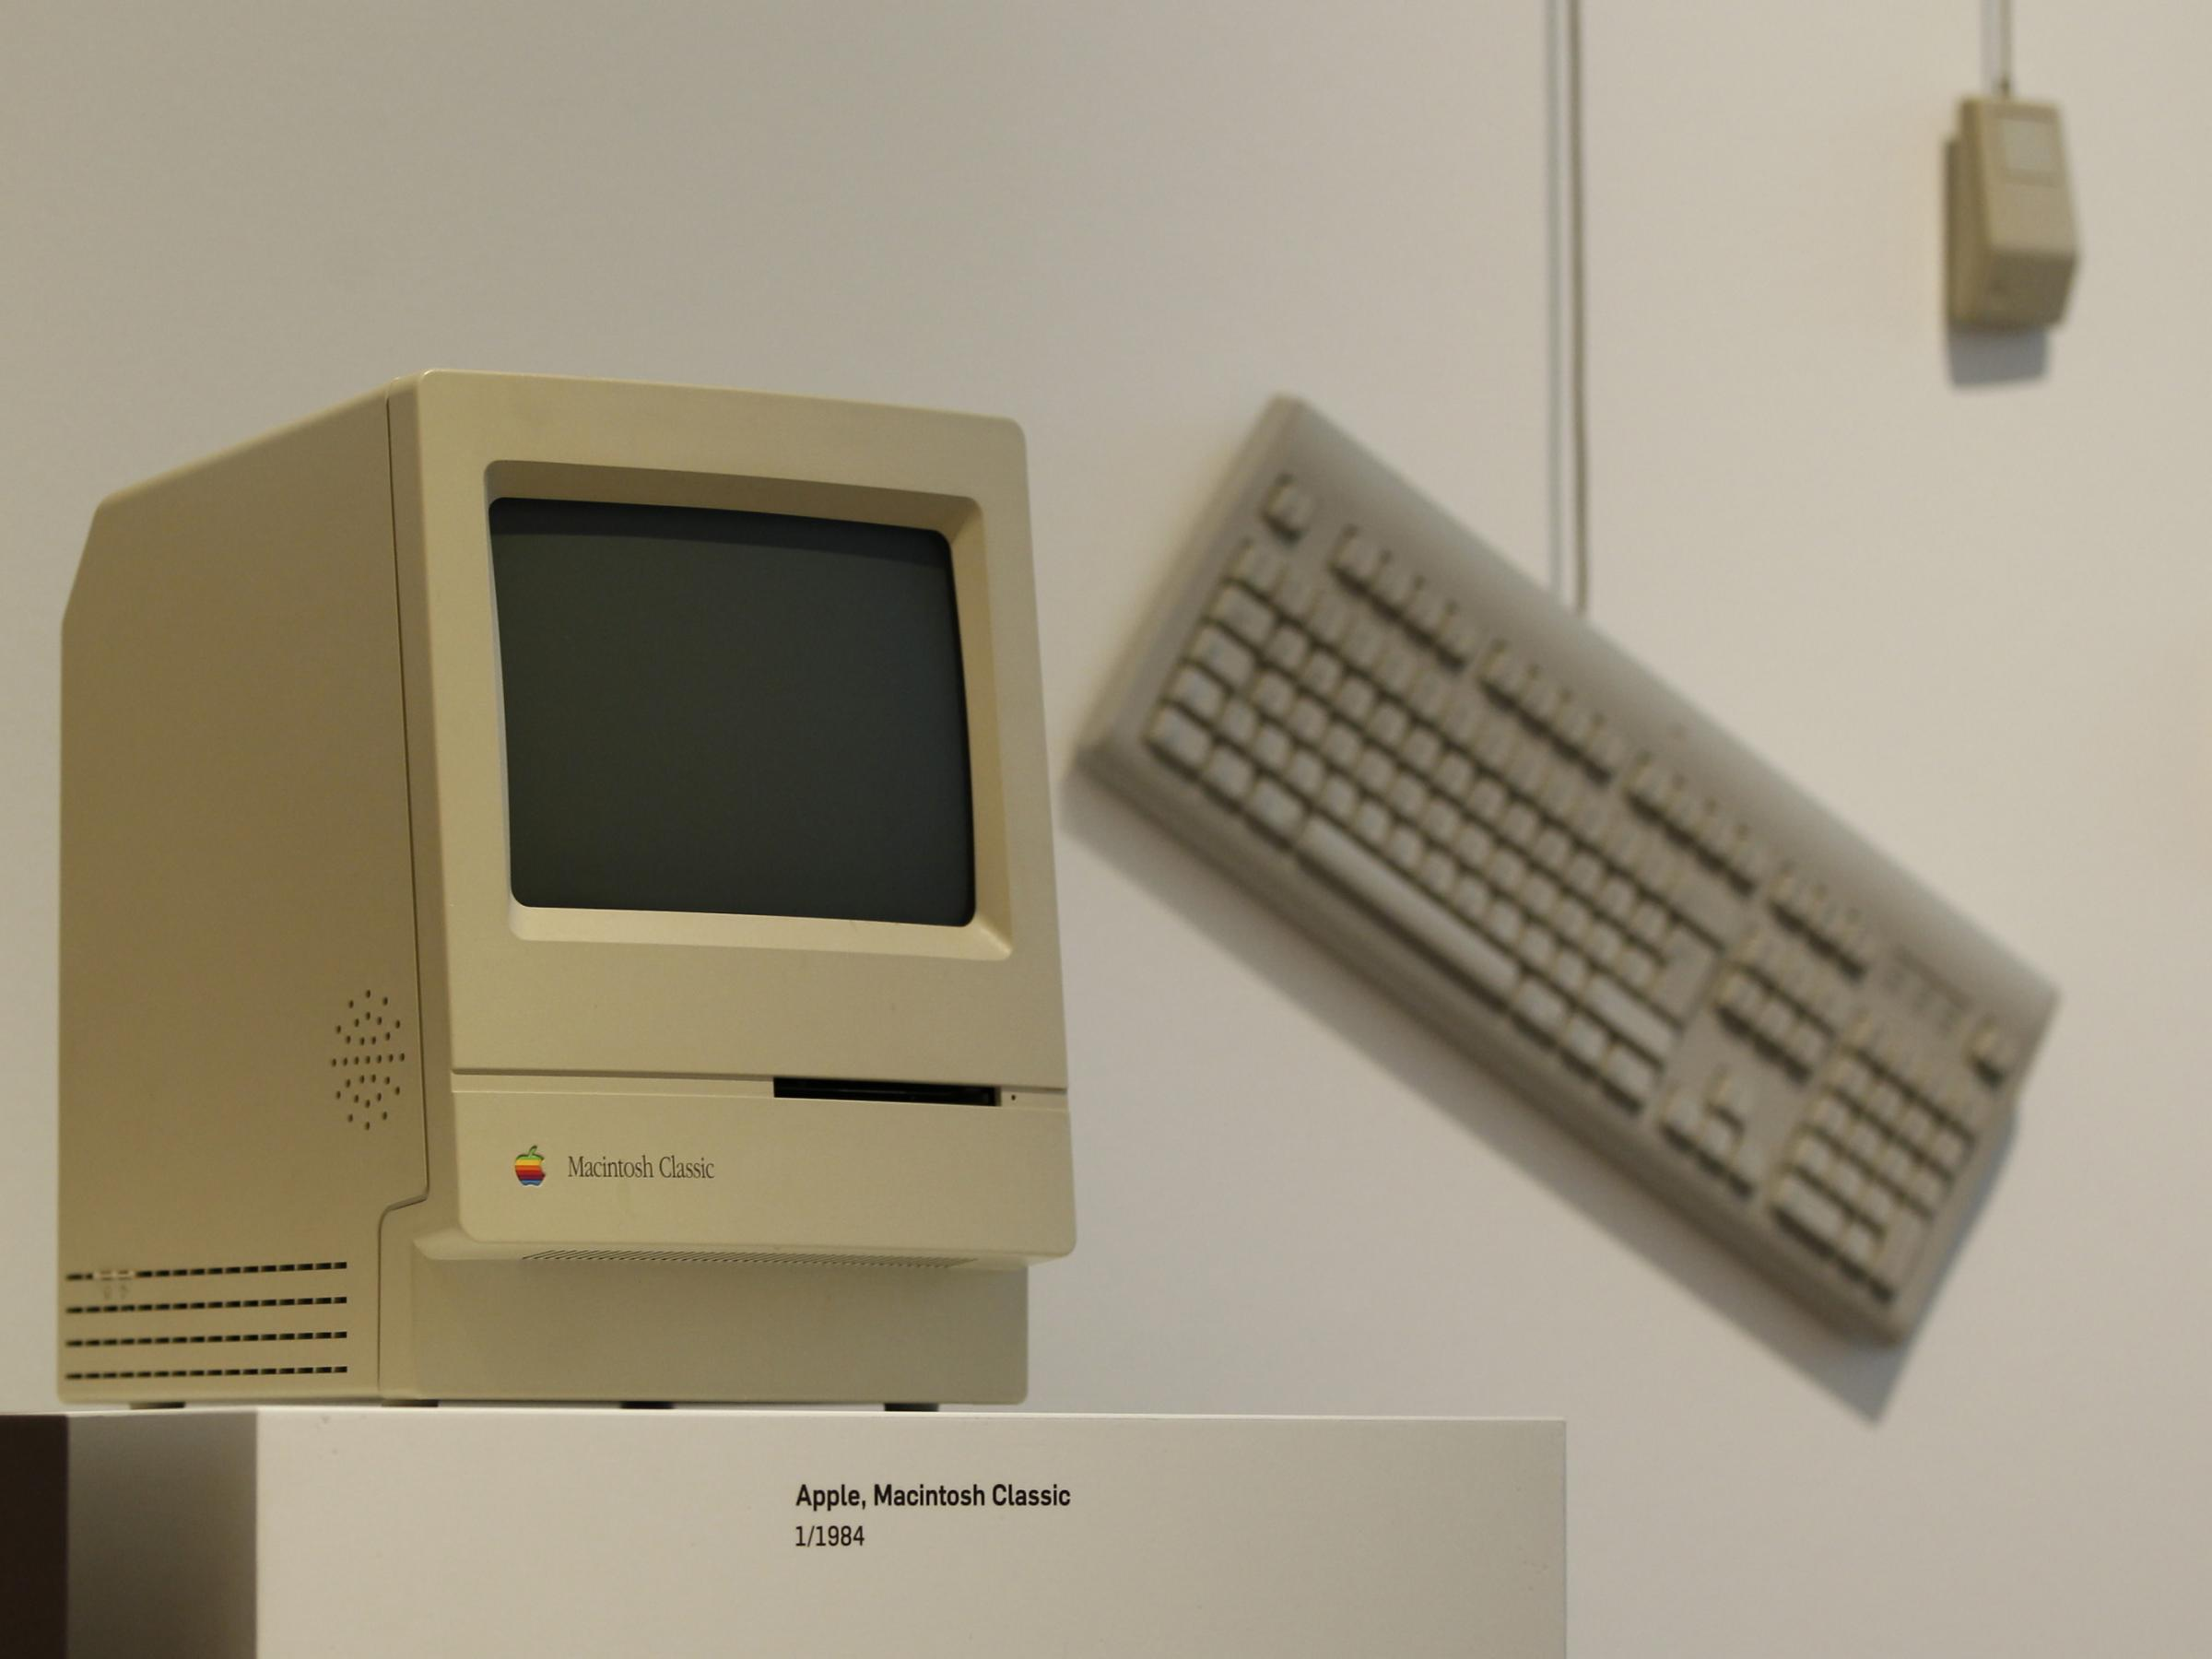 a 1984 apple macintosh classic was on display at the museum for art and industry in hamburg germany in 2011